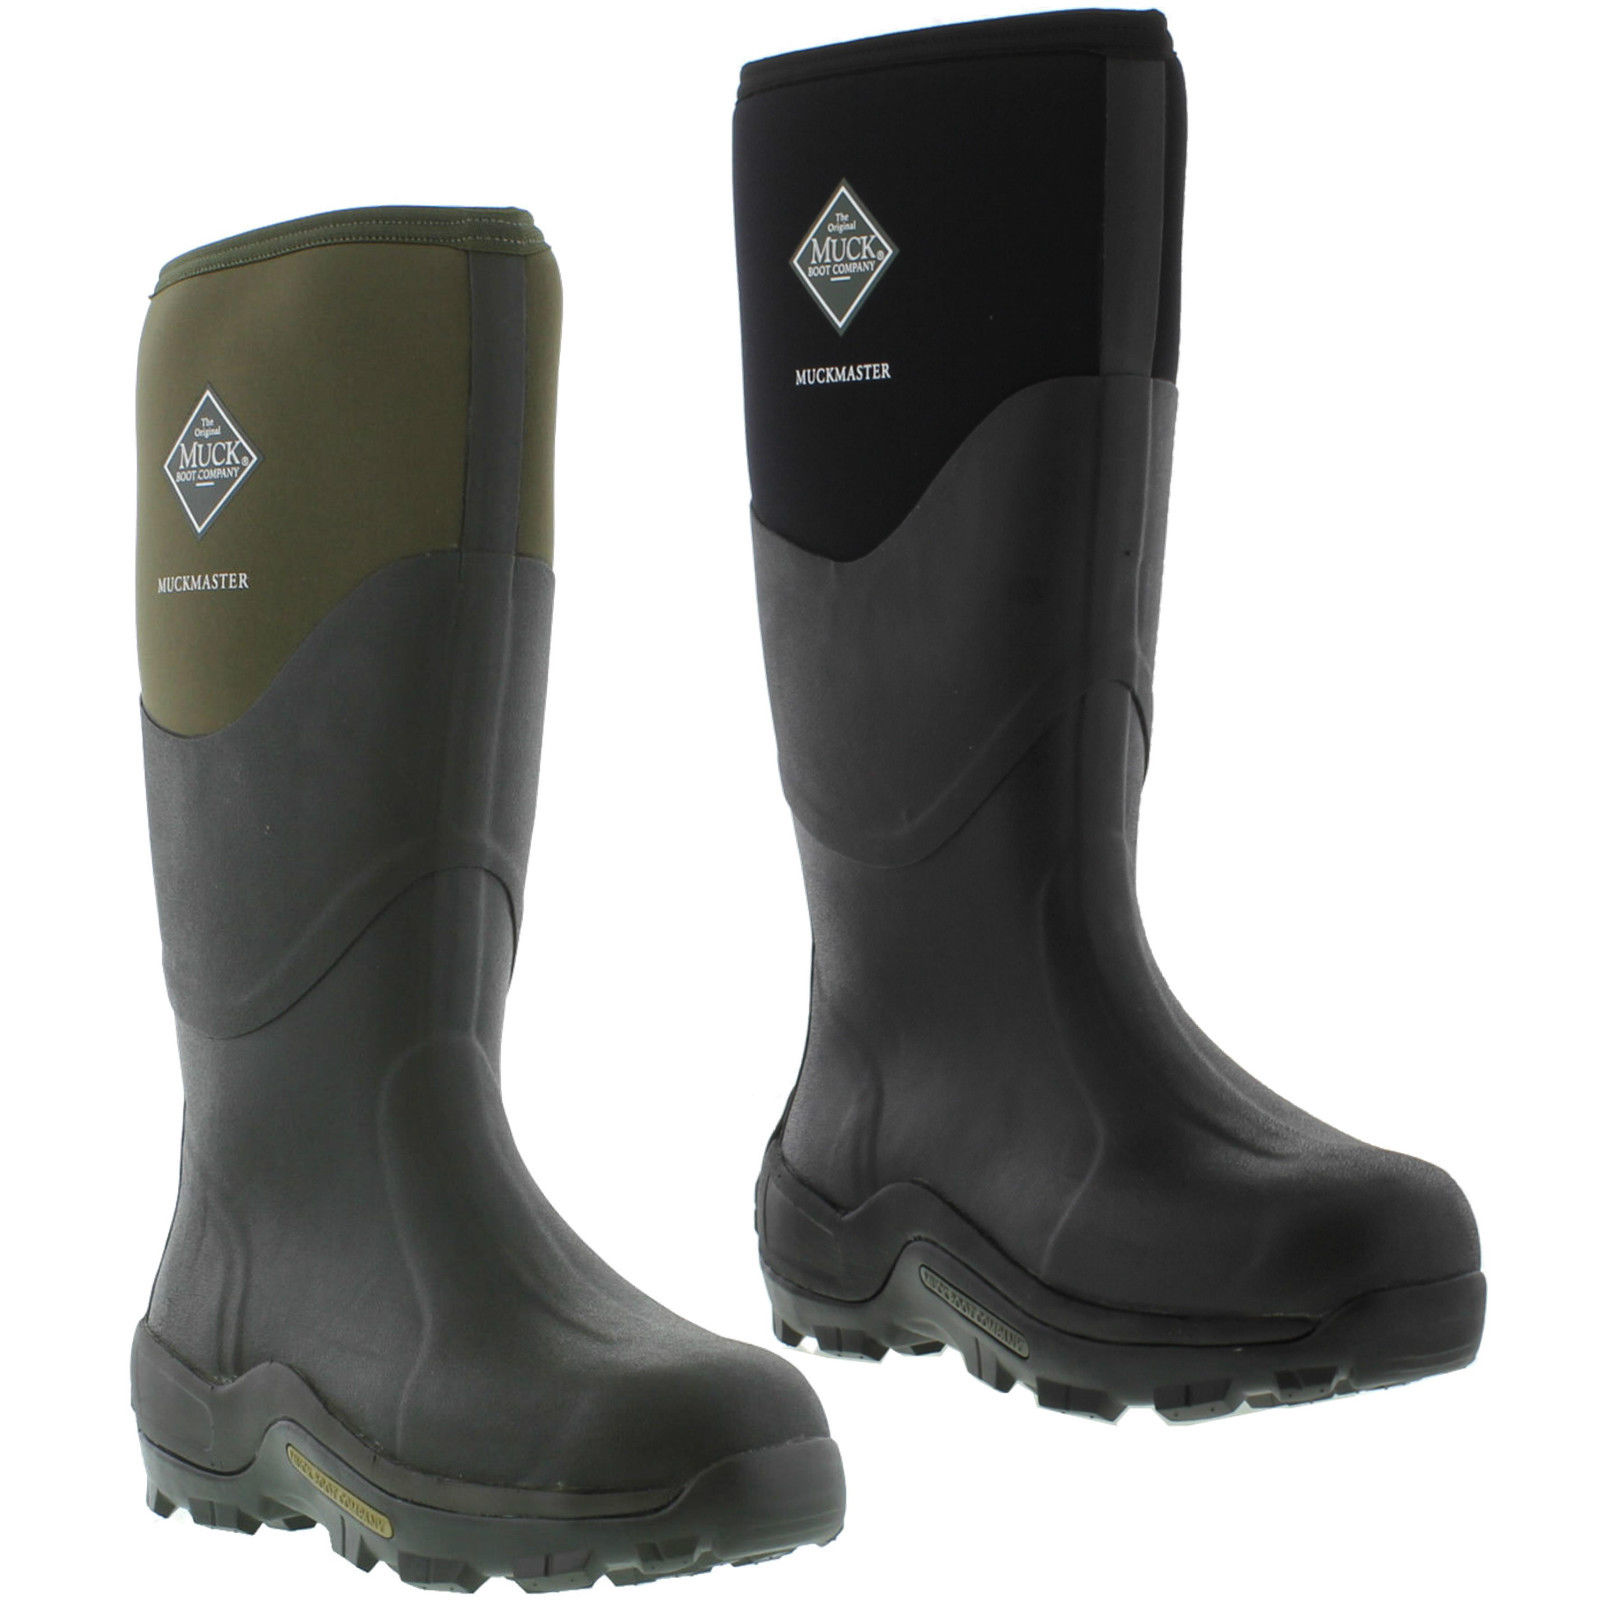 b14074affd3 Details about Muck Boots Muckmaster Mens Womens Wellies Neoprene Wellington  Boots Size 4-13